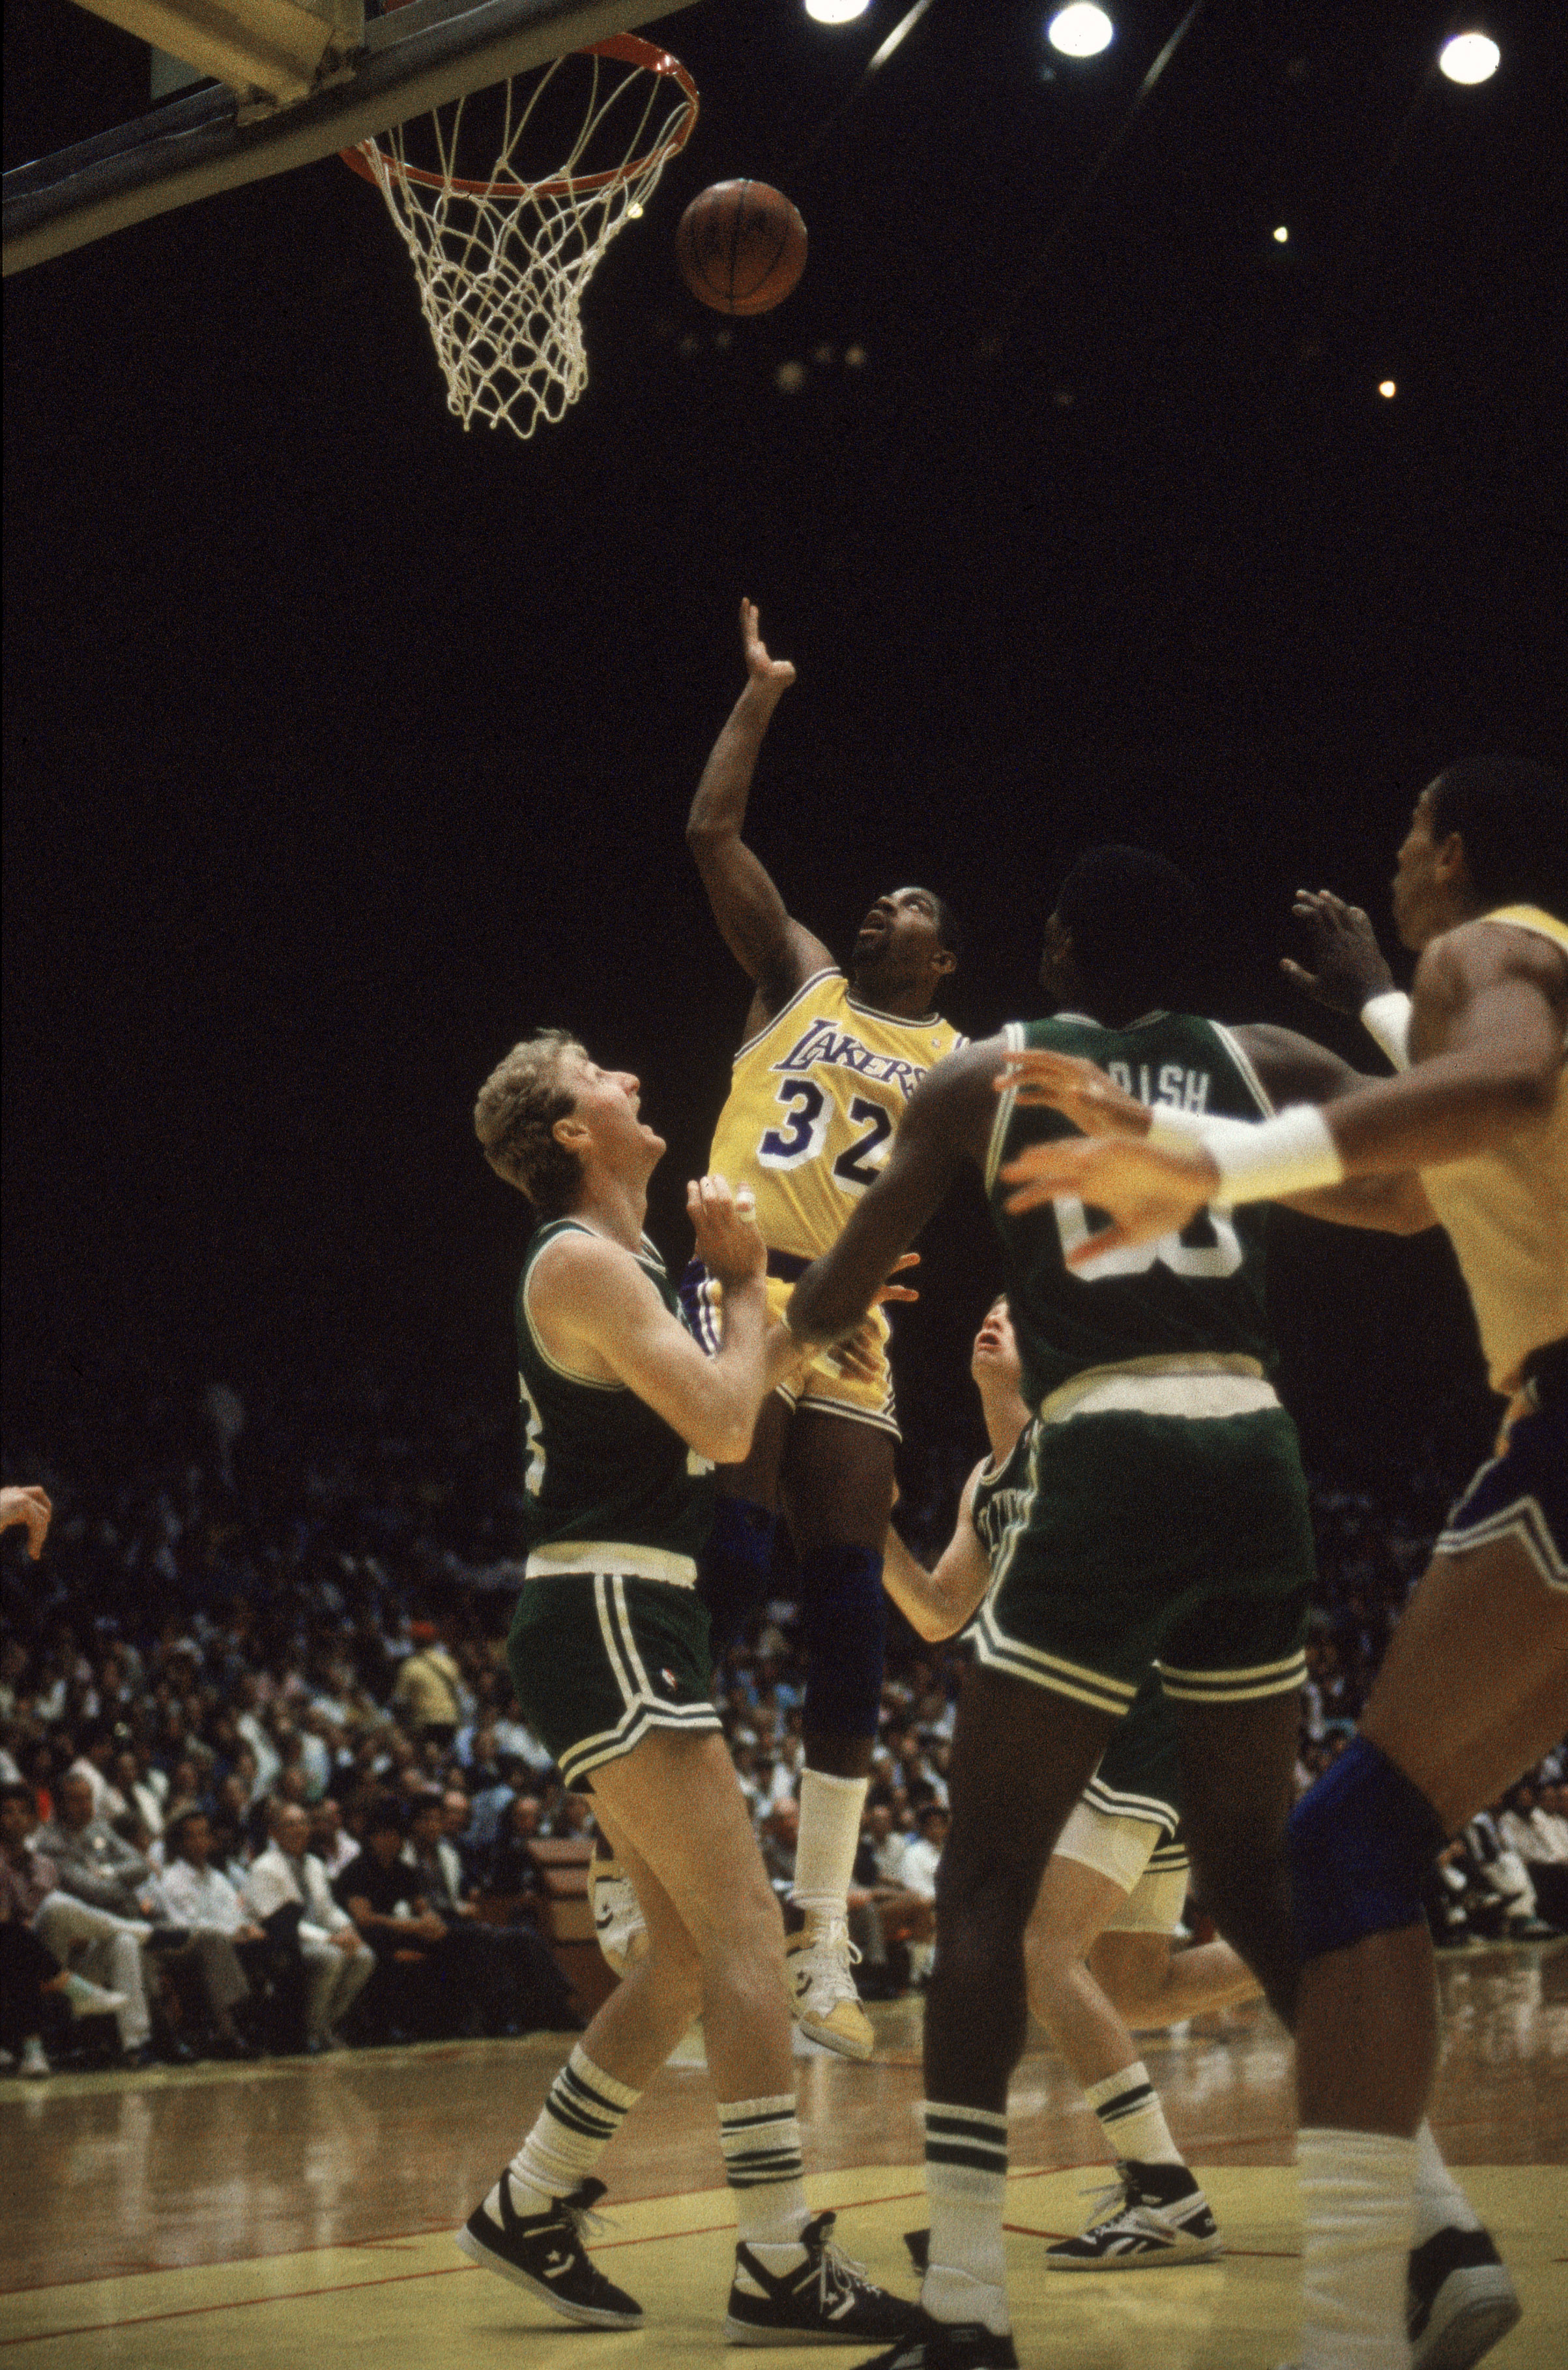 LOS ANGELES - 1987:  Magic Johnson #32 of the Los Angeles Lakers rebounds over Larry Bird #33 of the Boston Celtics during an NBA Finals game at the Great Western Forum in Los Angeles, California in 1987. (Photo by: Mike Powell/Getty Images)